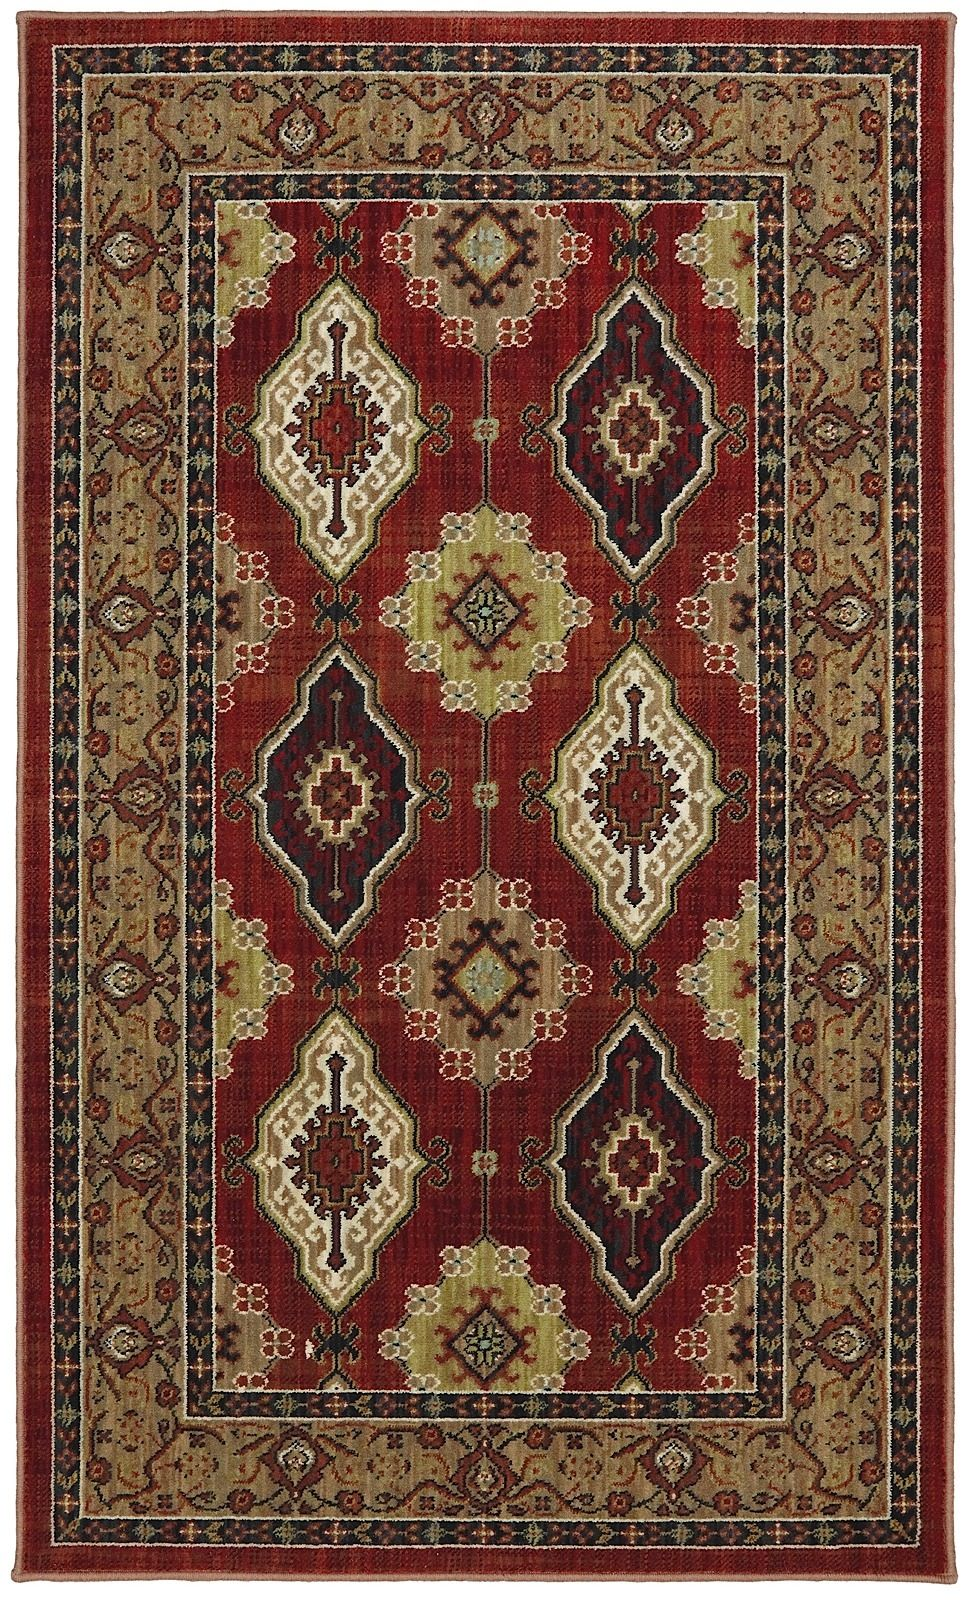 karastan woolrich traditional area rug collection